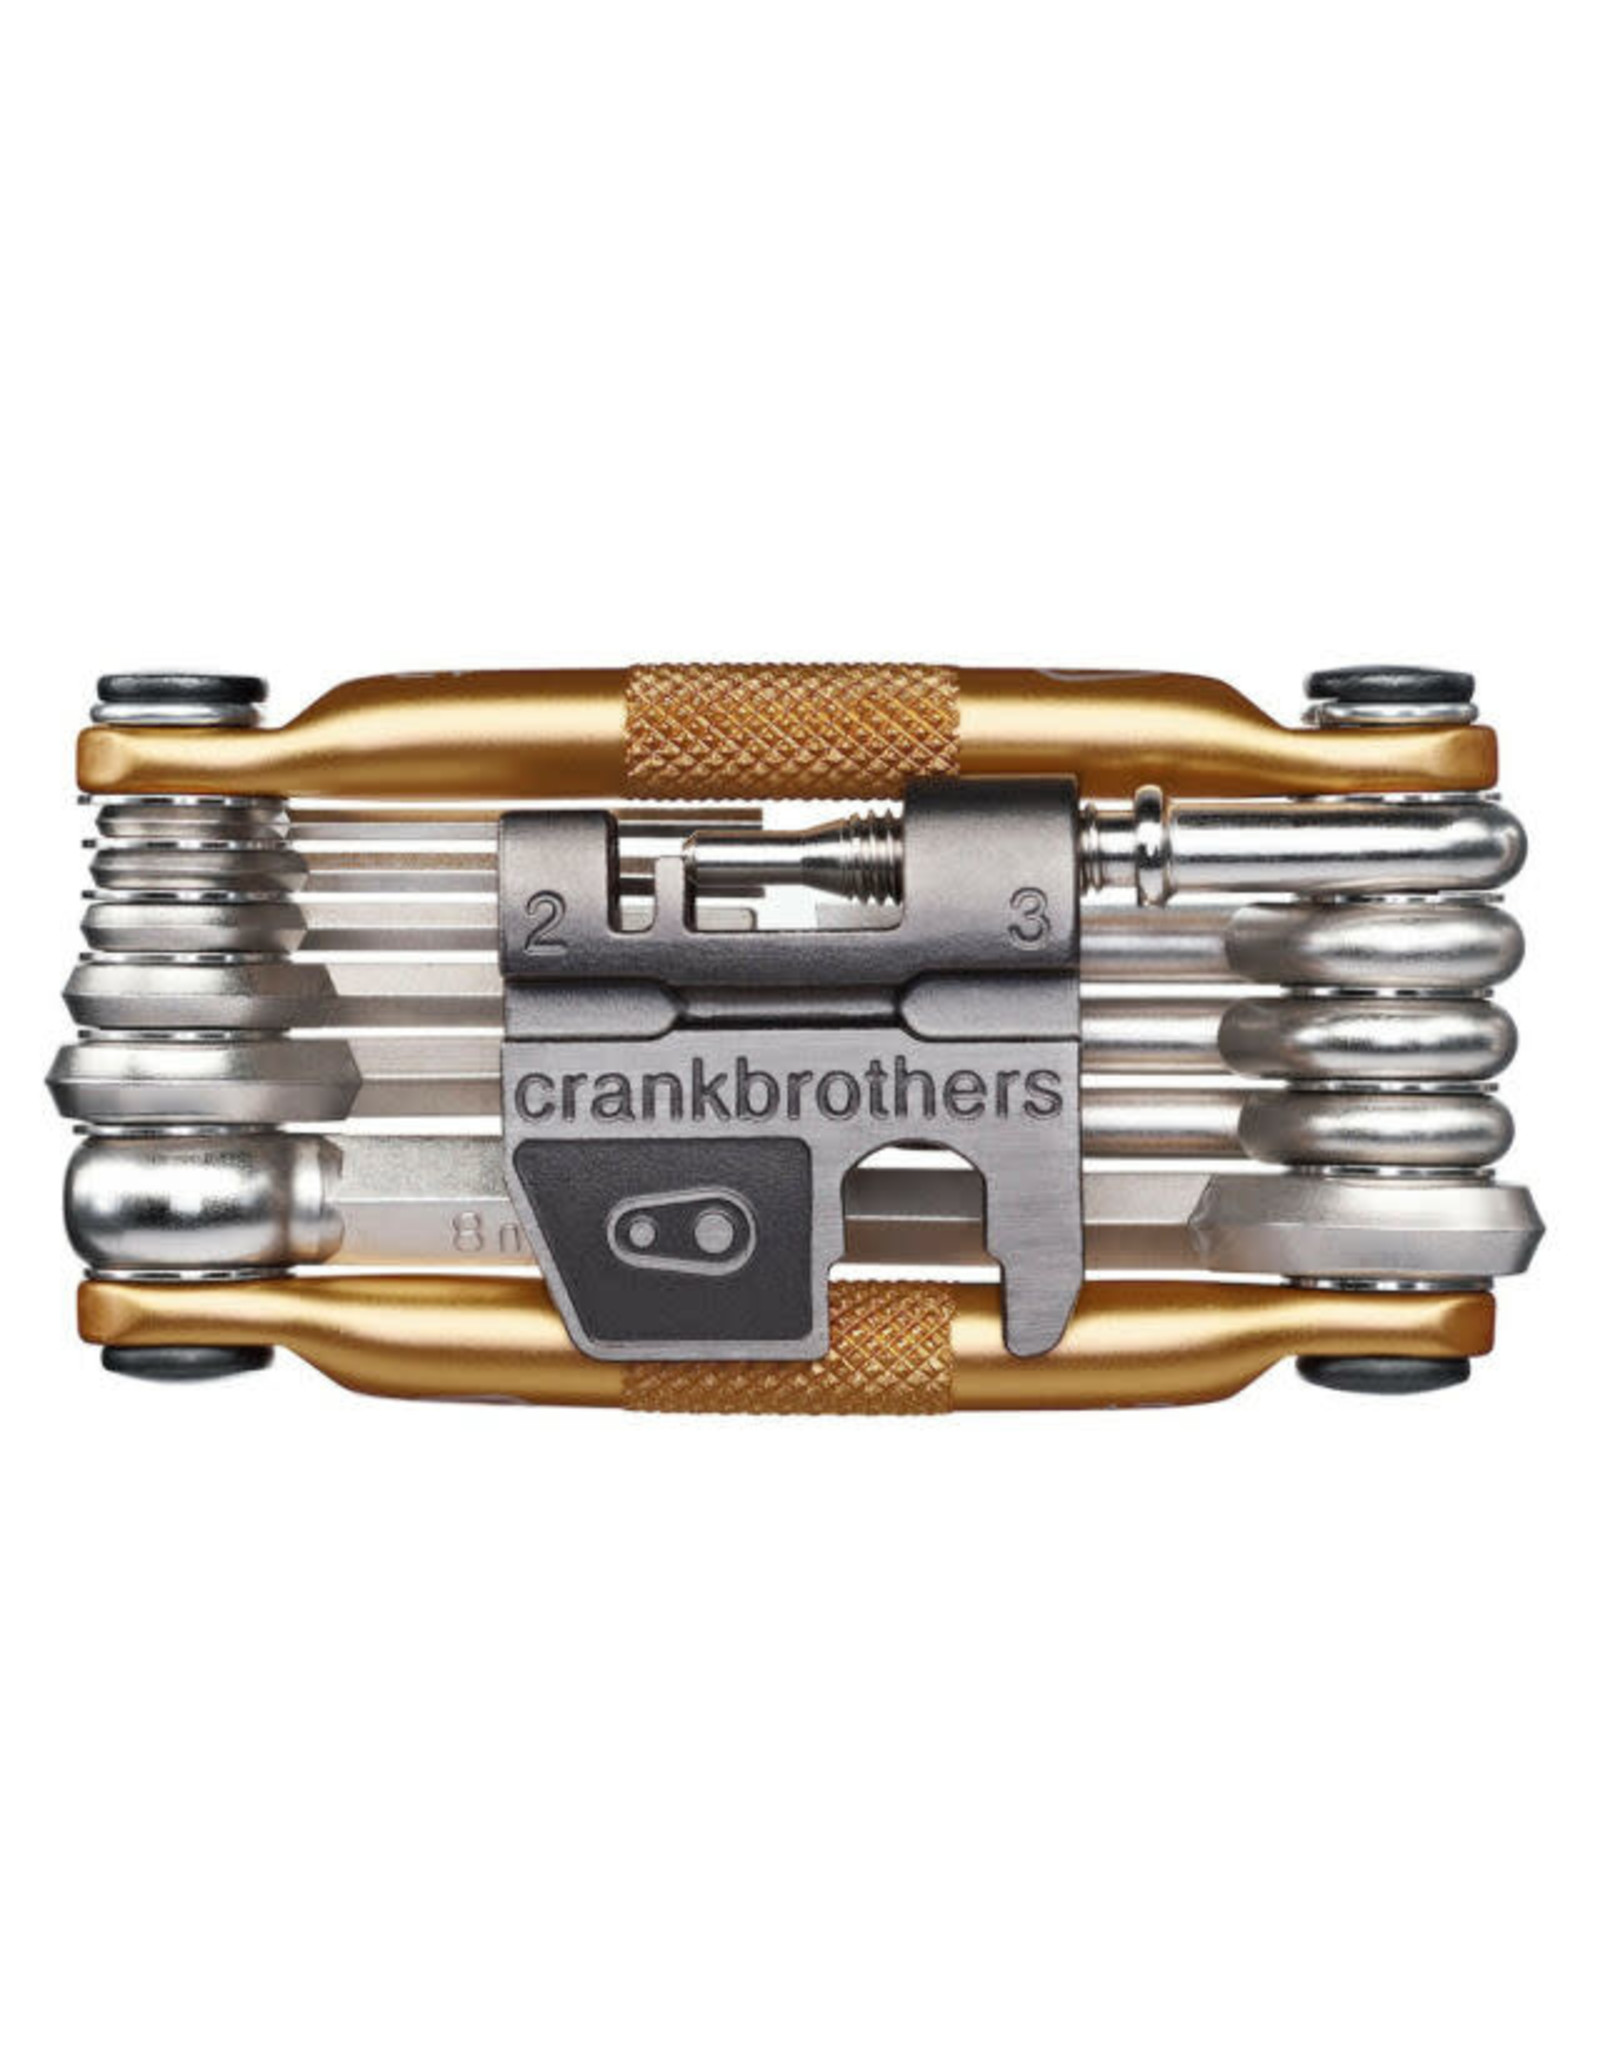 Crankbrothers CRANKBROTHERS, Tool,  Multi 17  - Gold